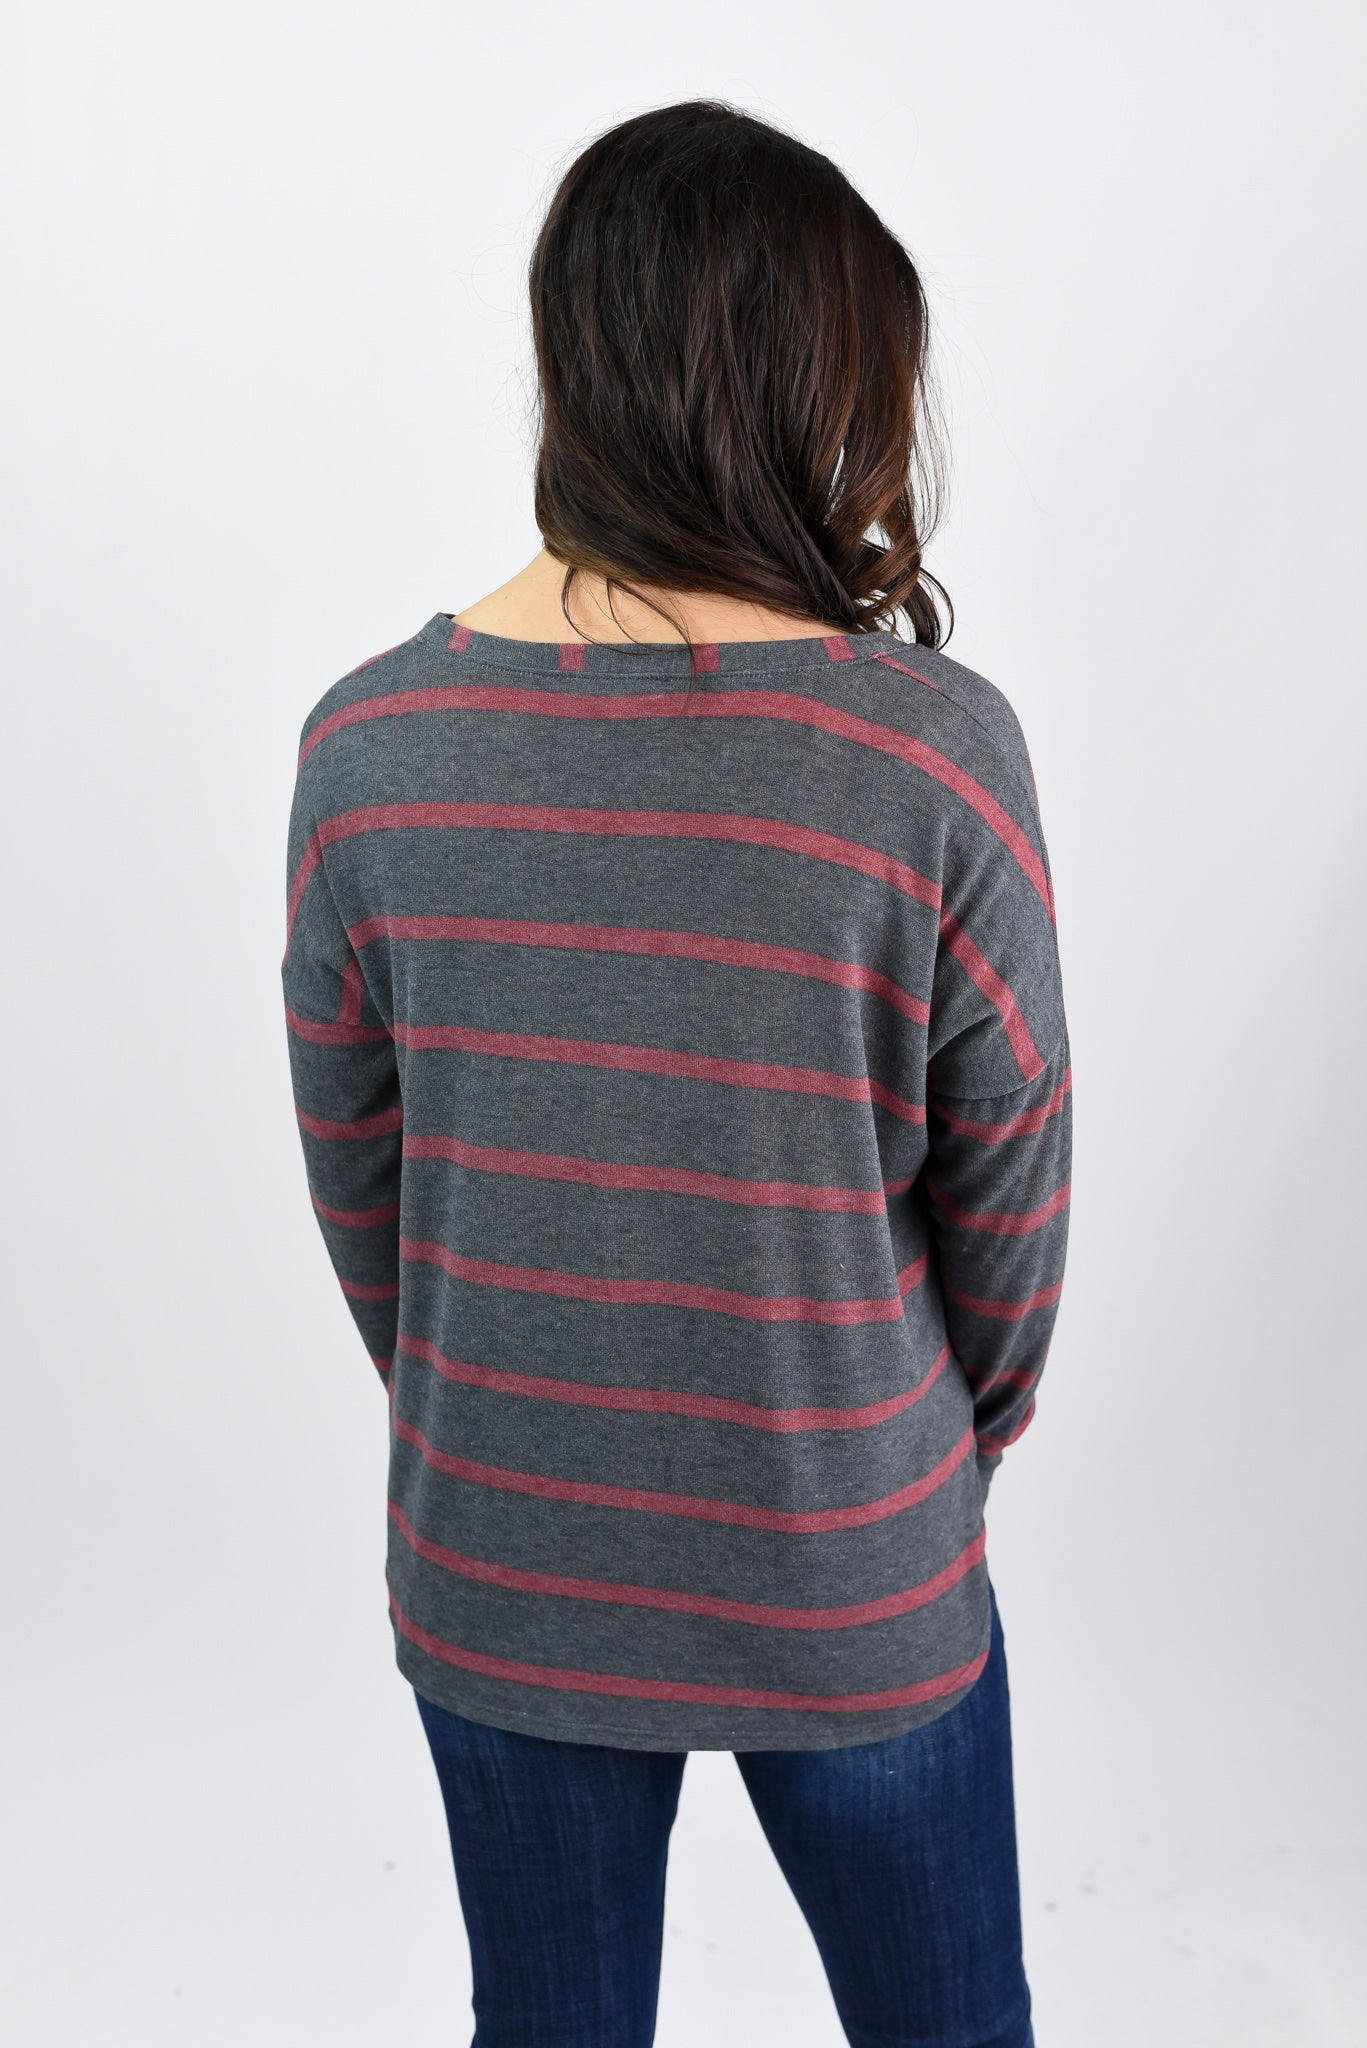 Mountain Air Charcoal with Red Stripe Long Sleeve